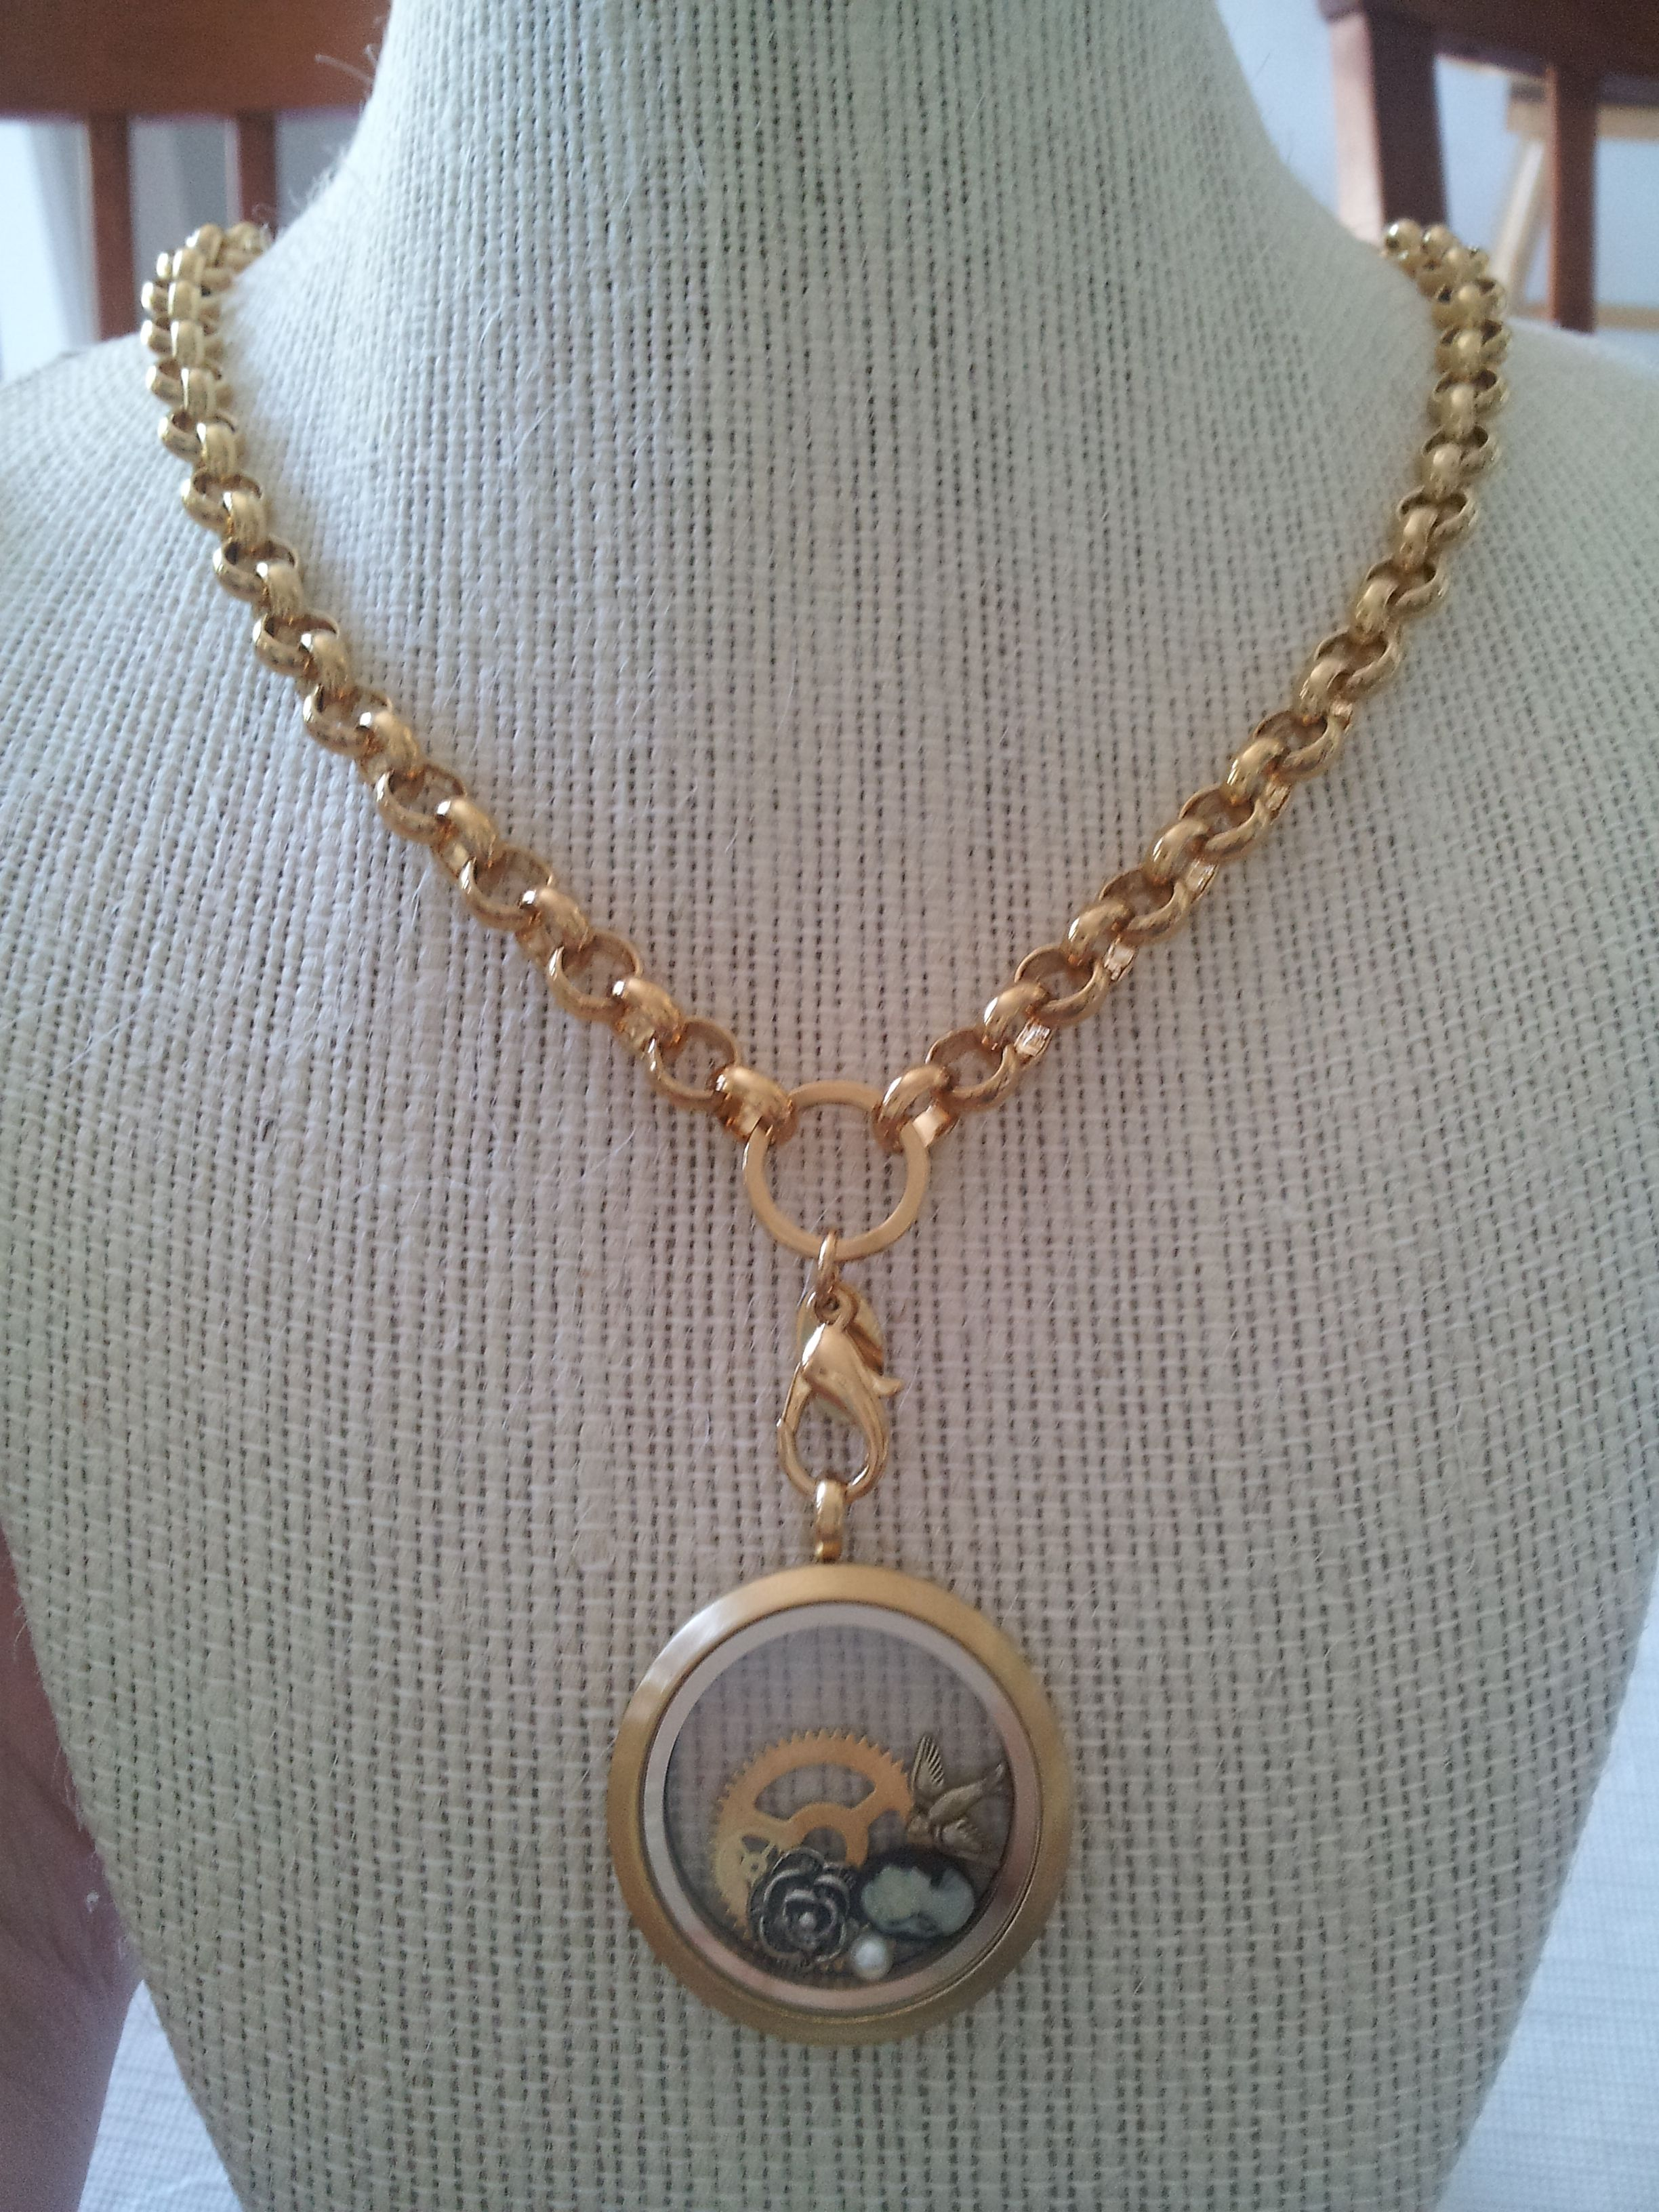 jewellery world lockets personalised vermeil gp locket in gold large london dinny my hall yellow